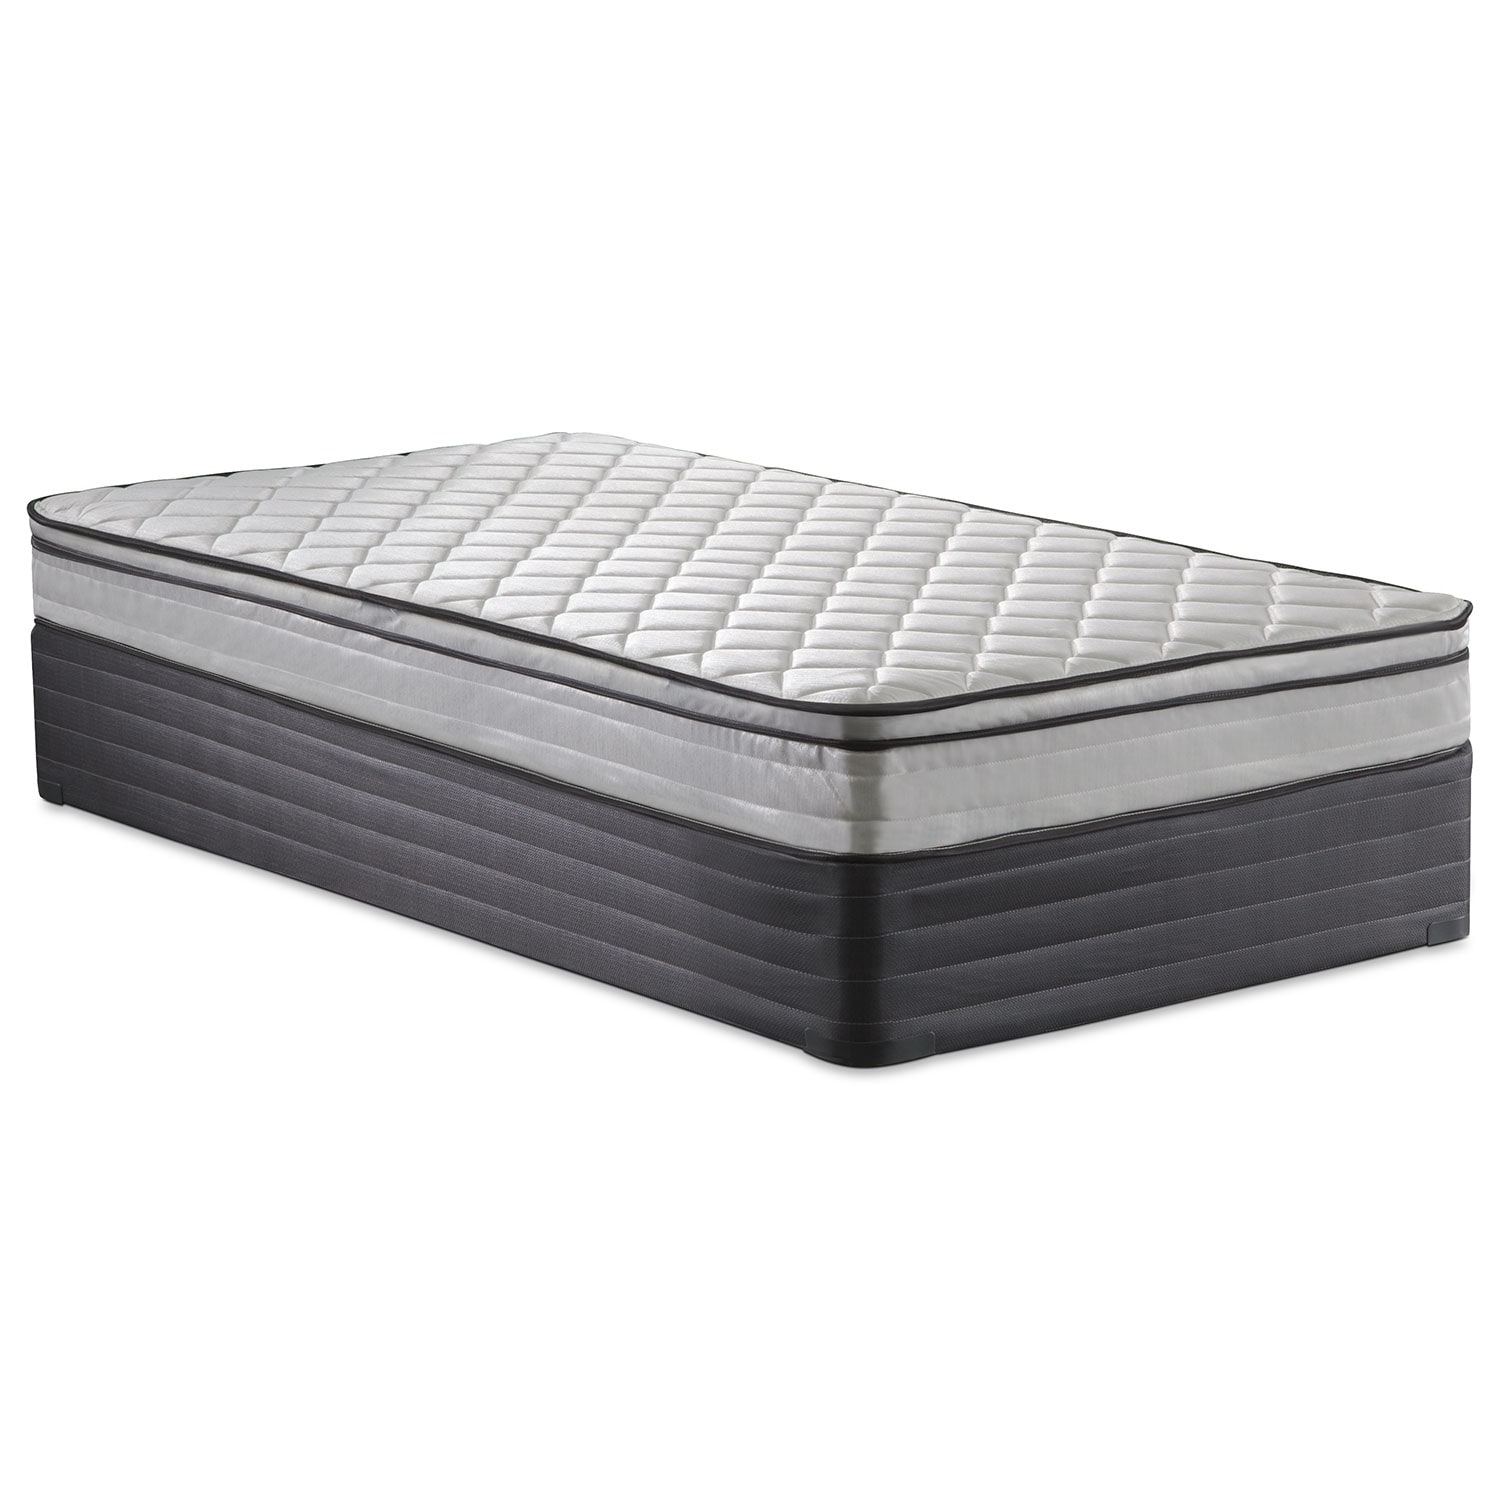 Mirage Medium Firm Full Mattress and Foundation Set